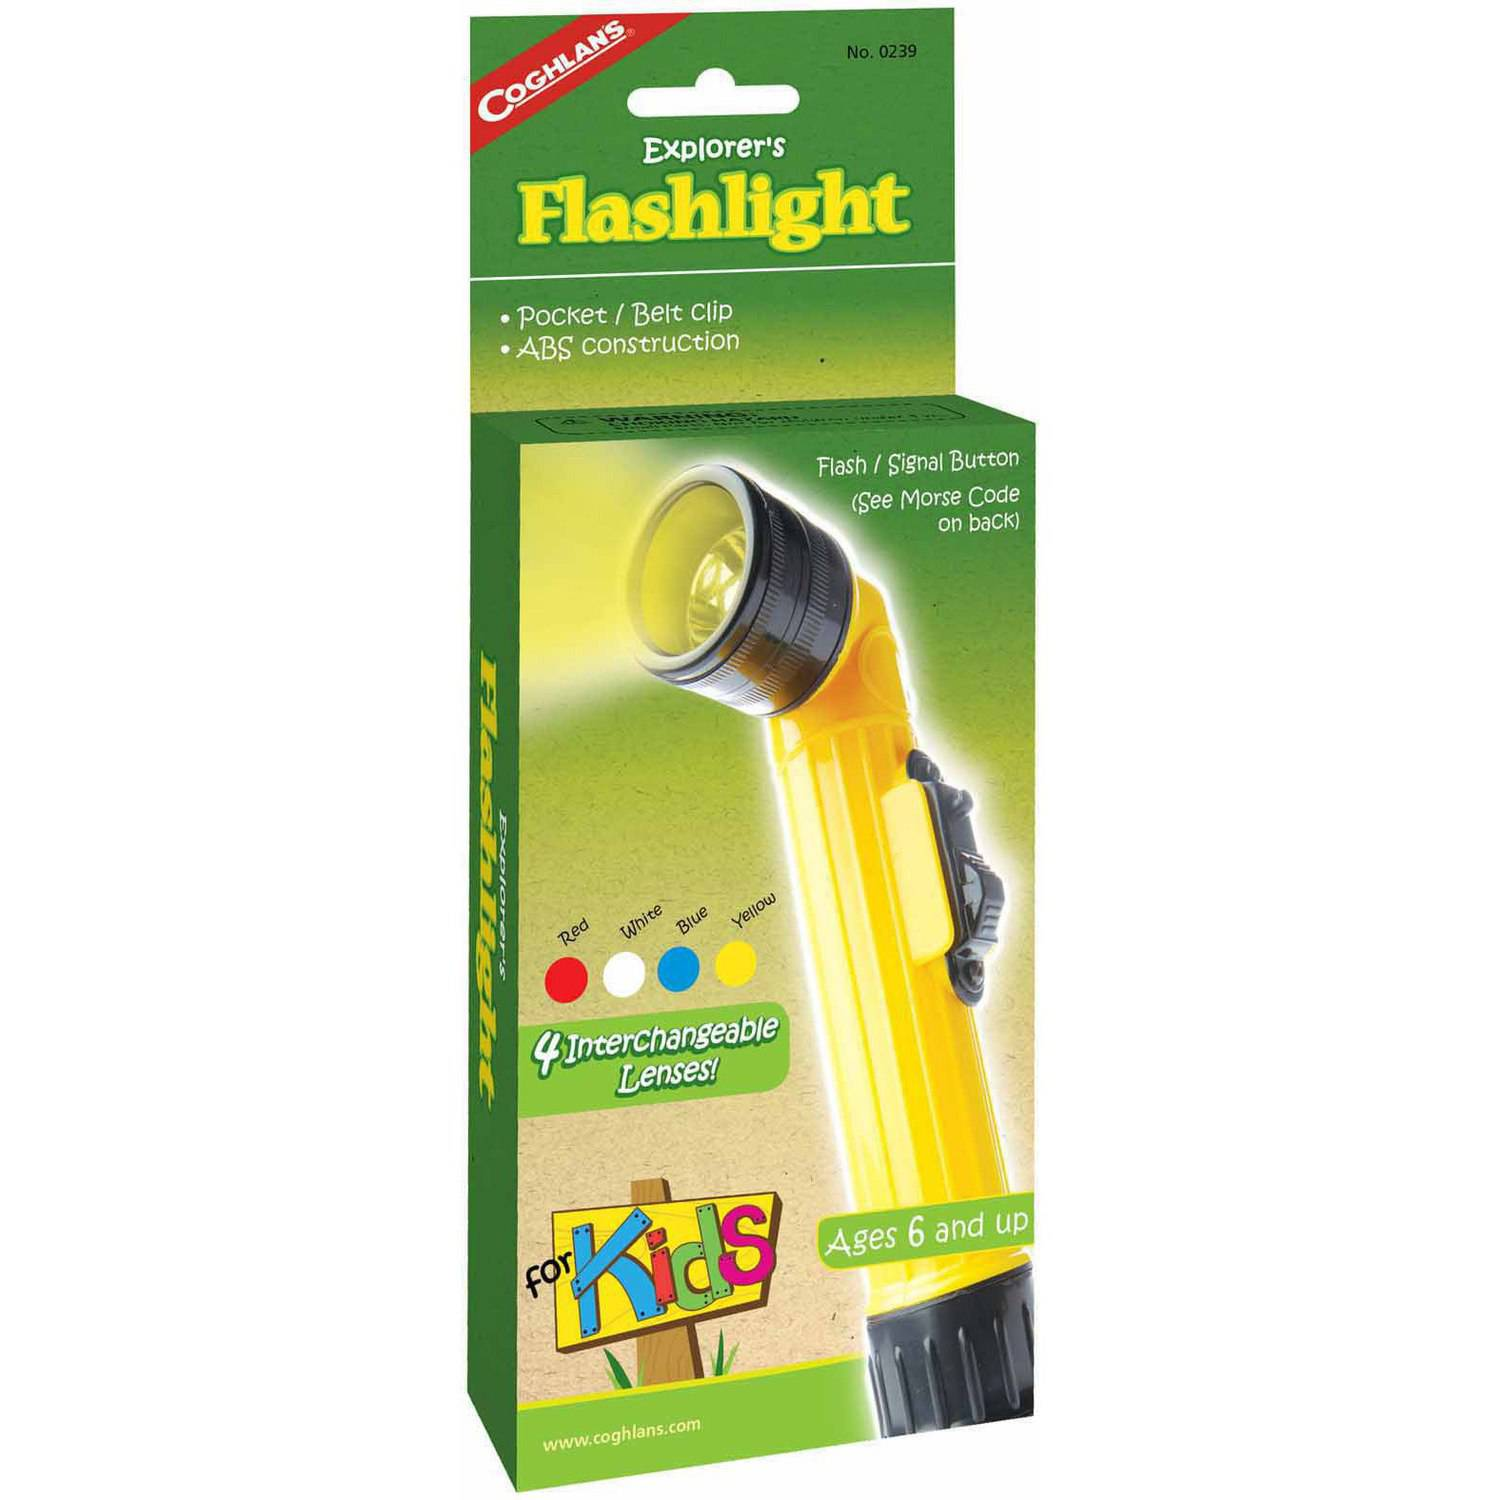 Coghlan's Flashlight for Kids by Generic